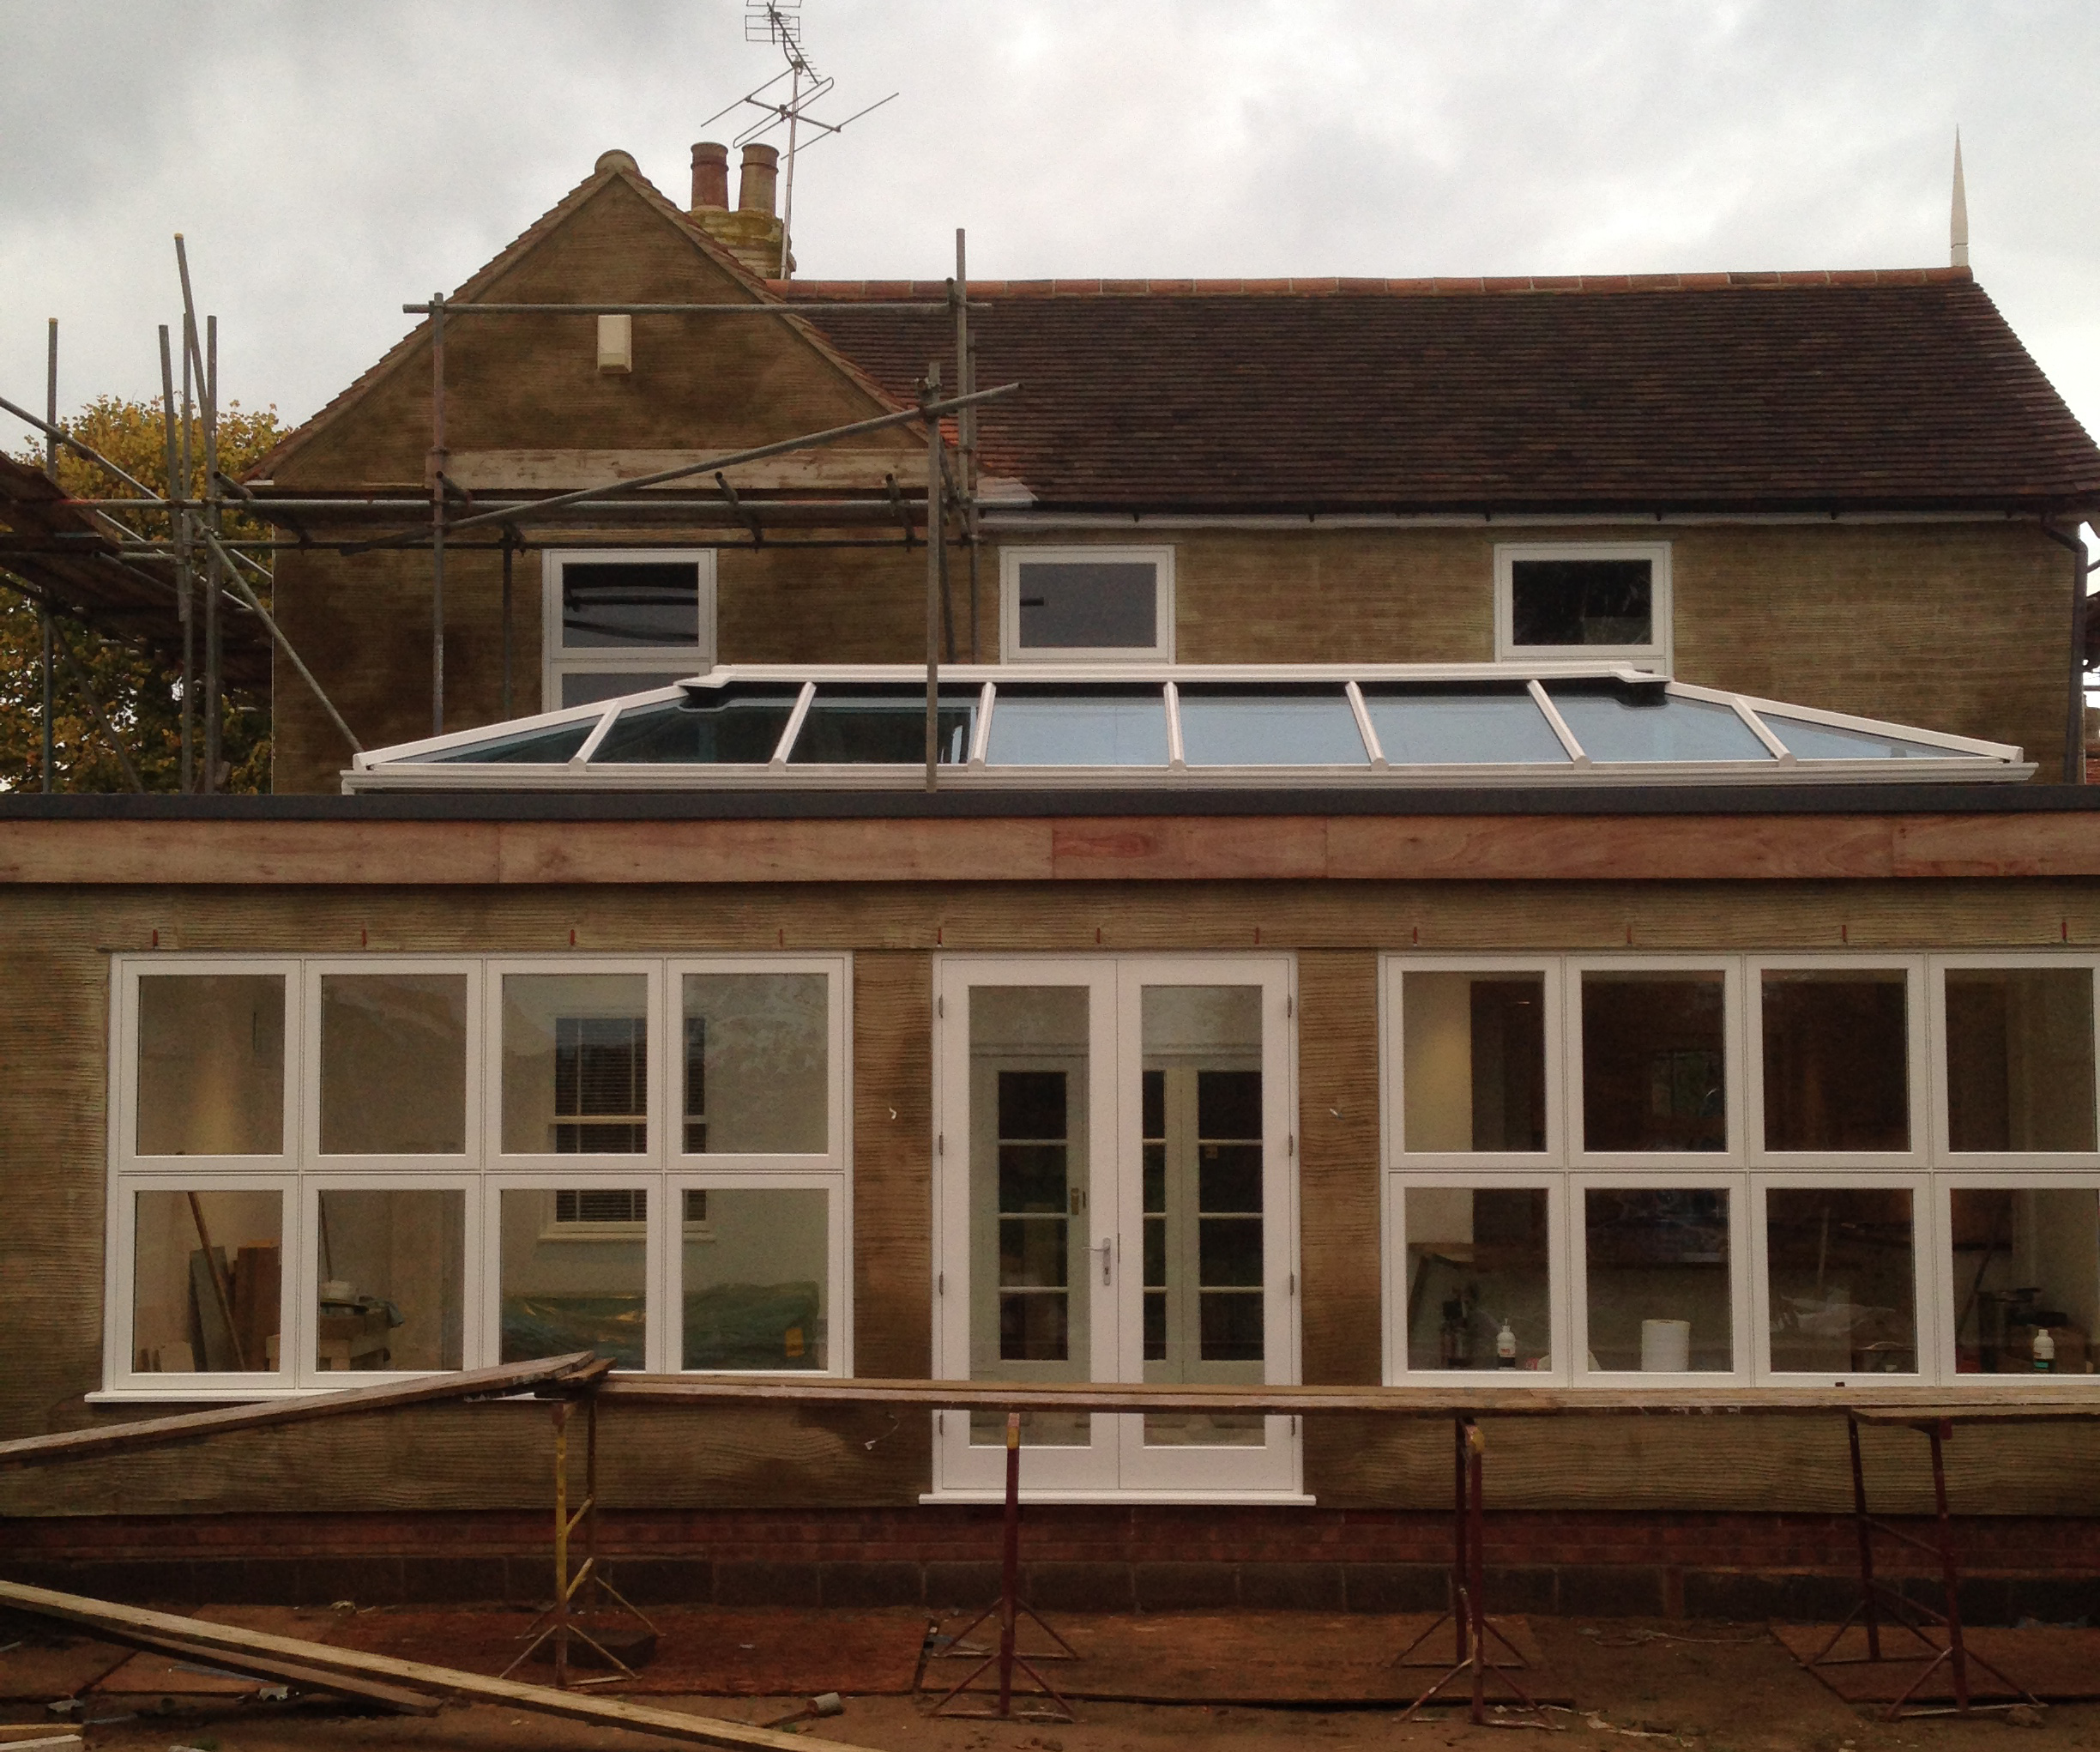 This client wanted to add a permanent extension rather than conservatory to their home